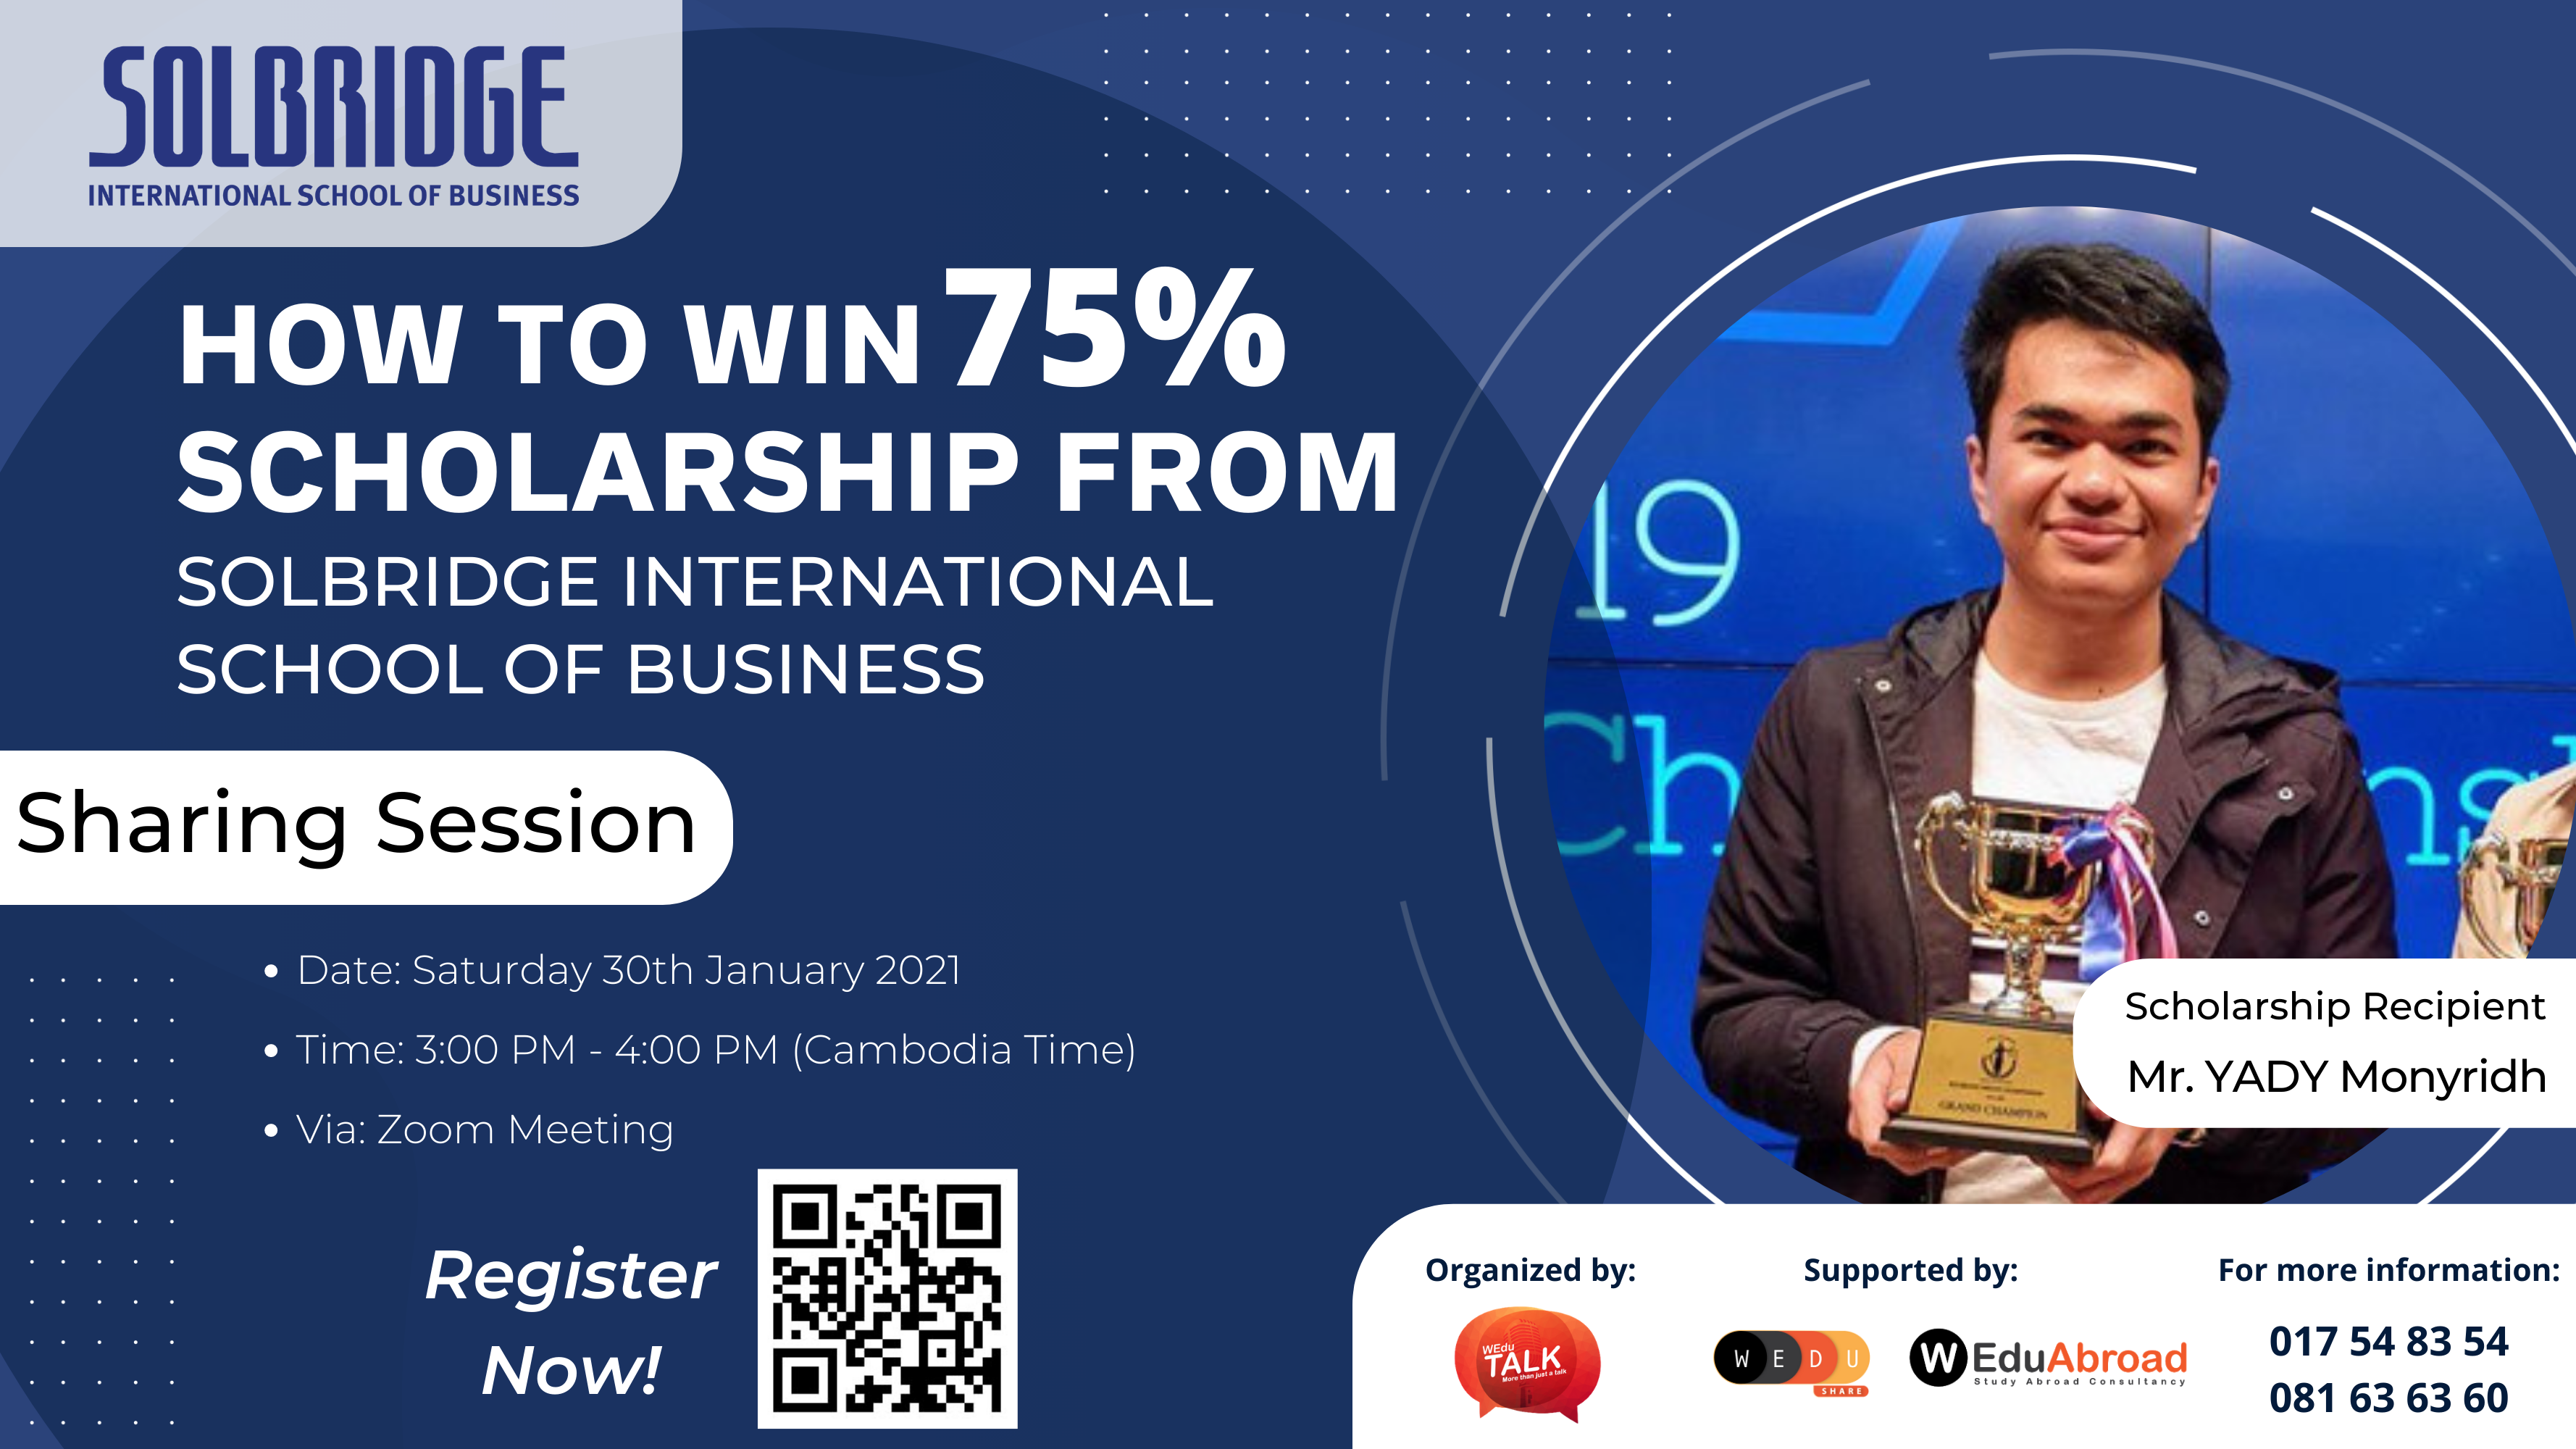 How to Win 75% Scholarship from SolBridge International School of Business in South Korea Sharing Session